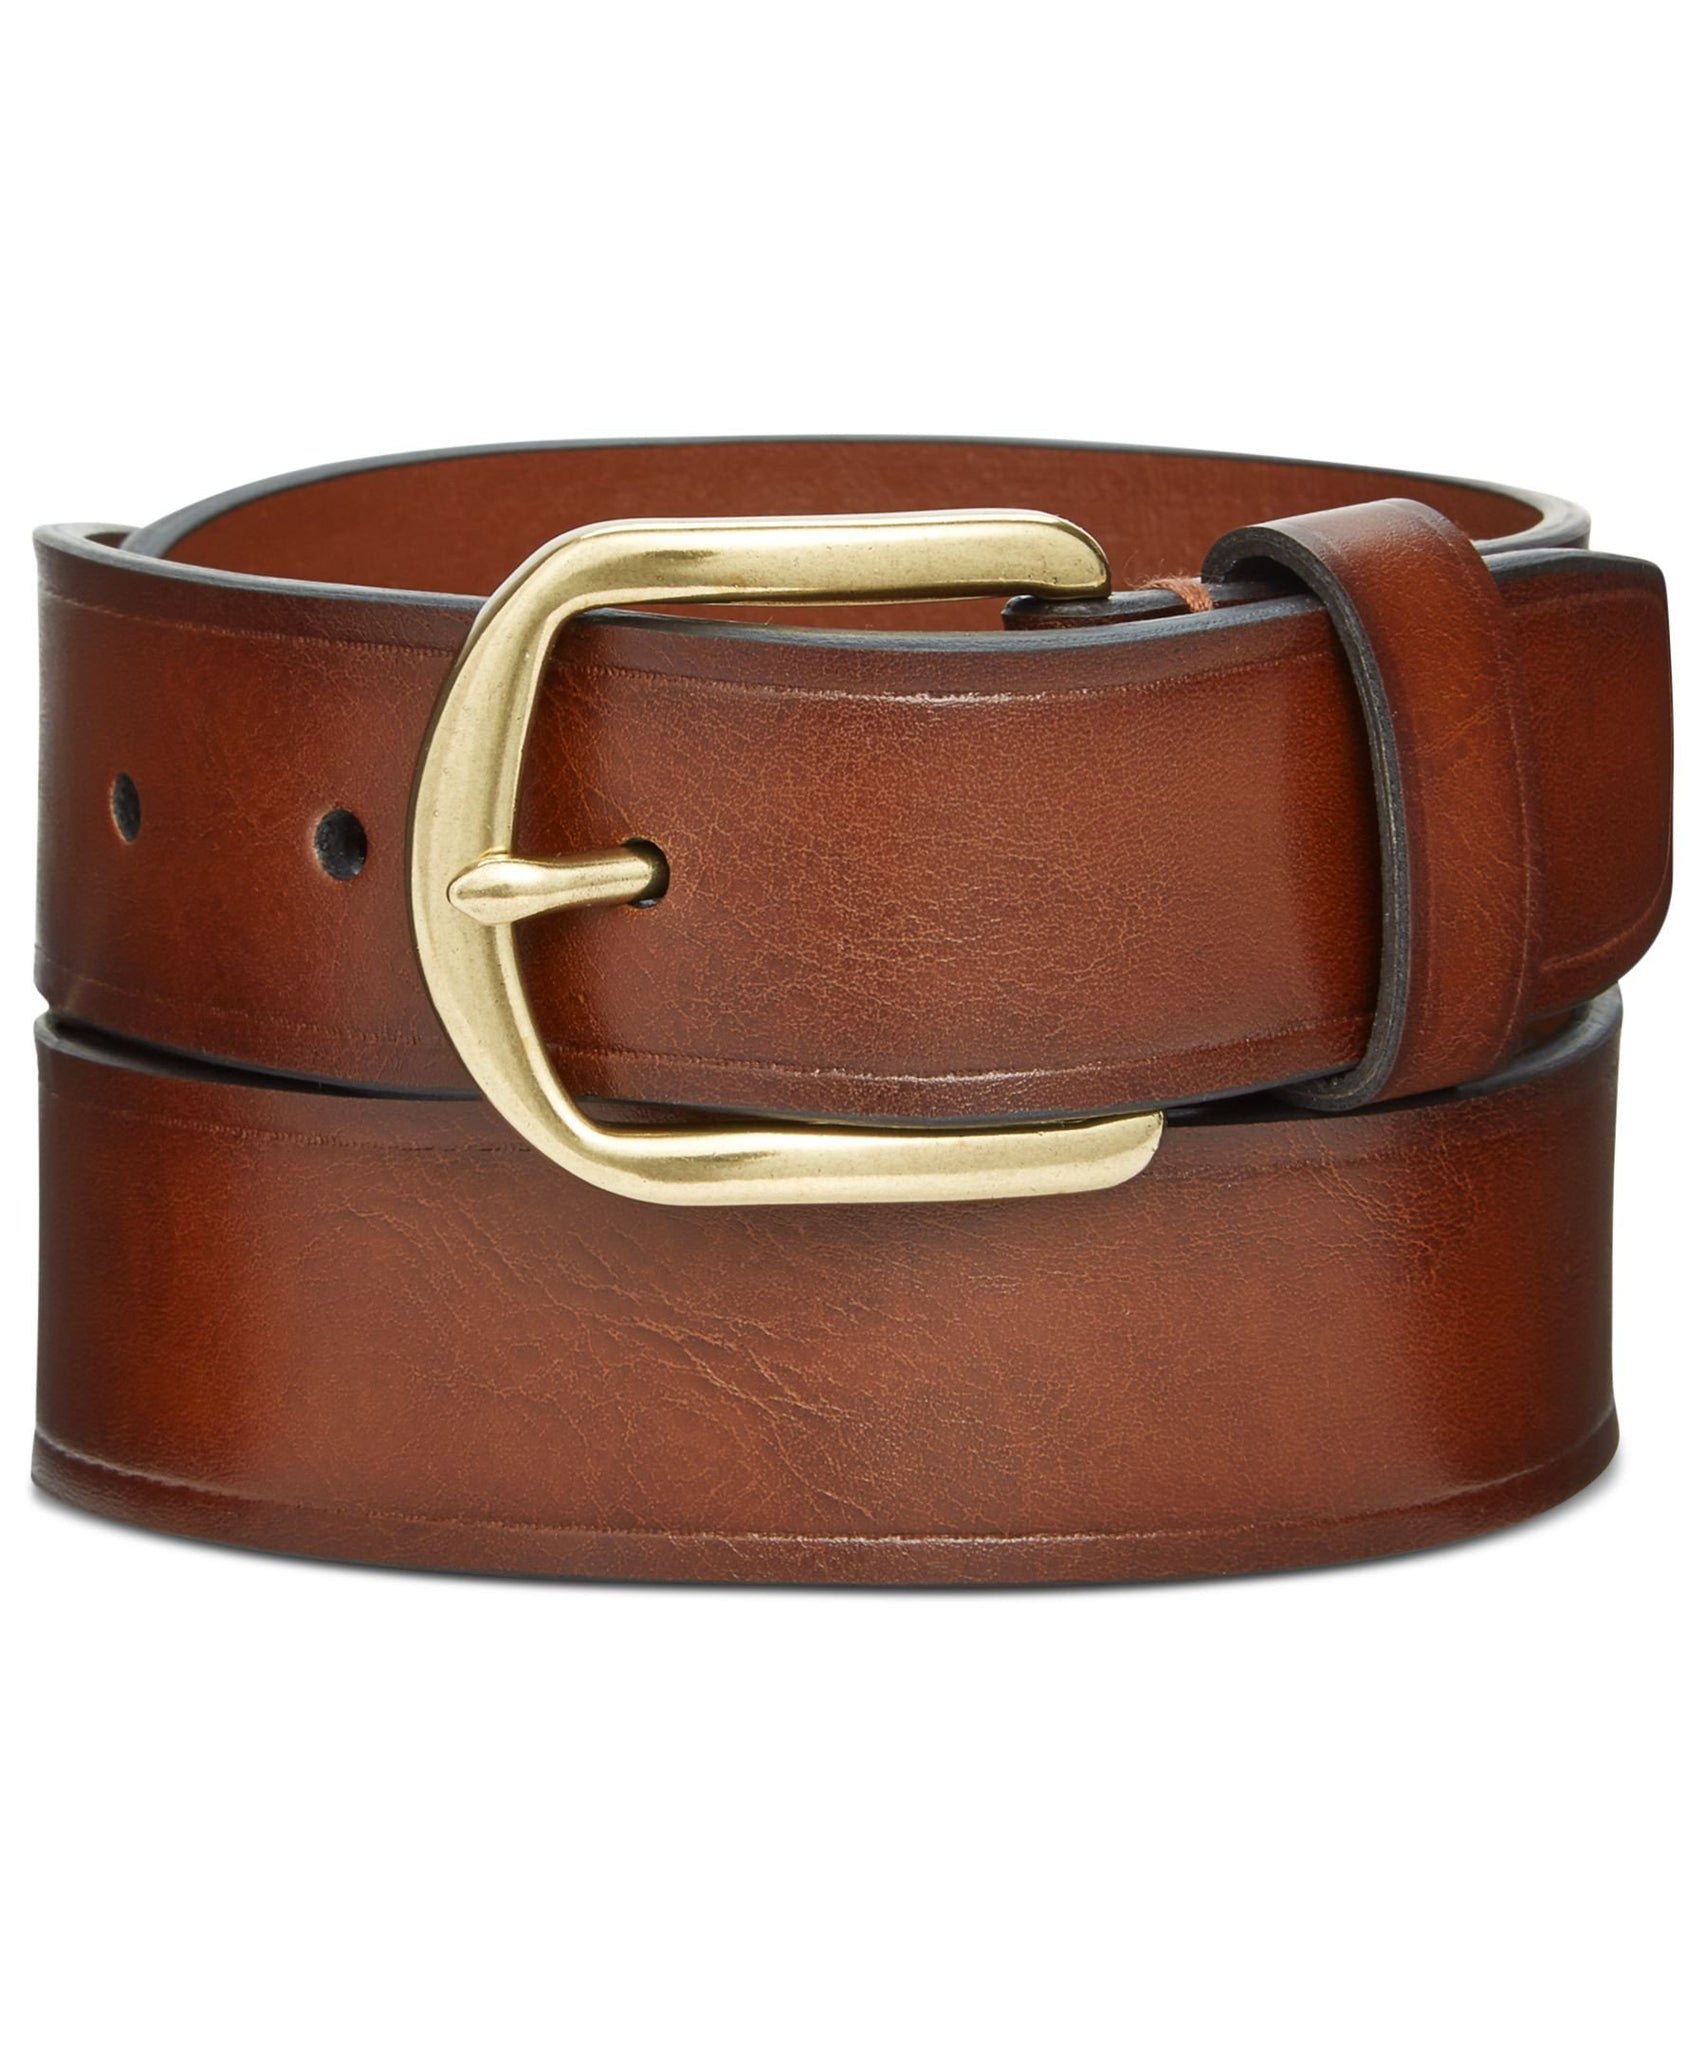 Alfani Cognac 35mm Dress Belt